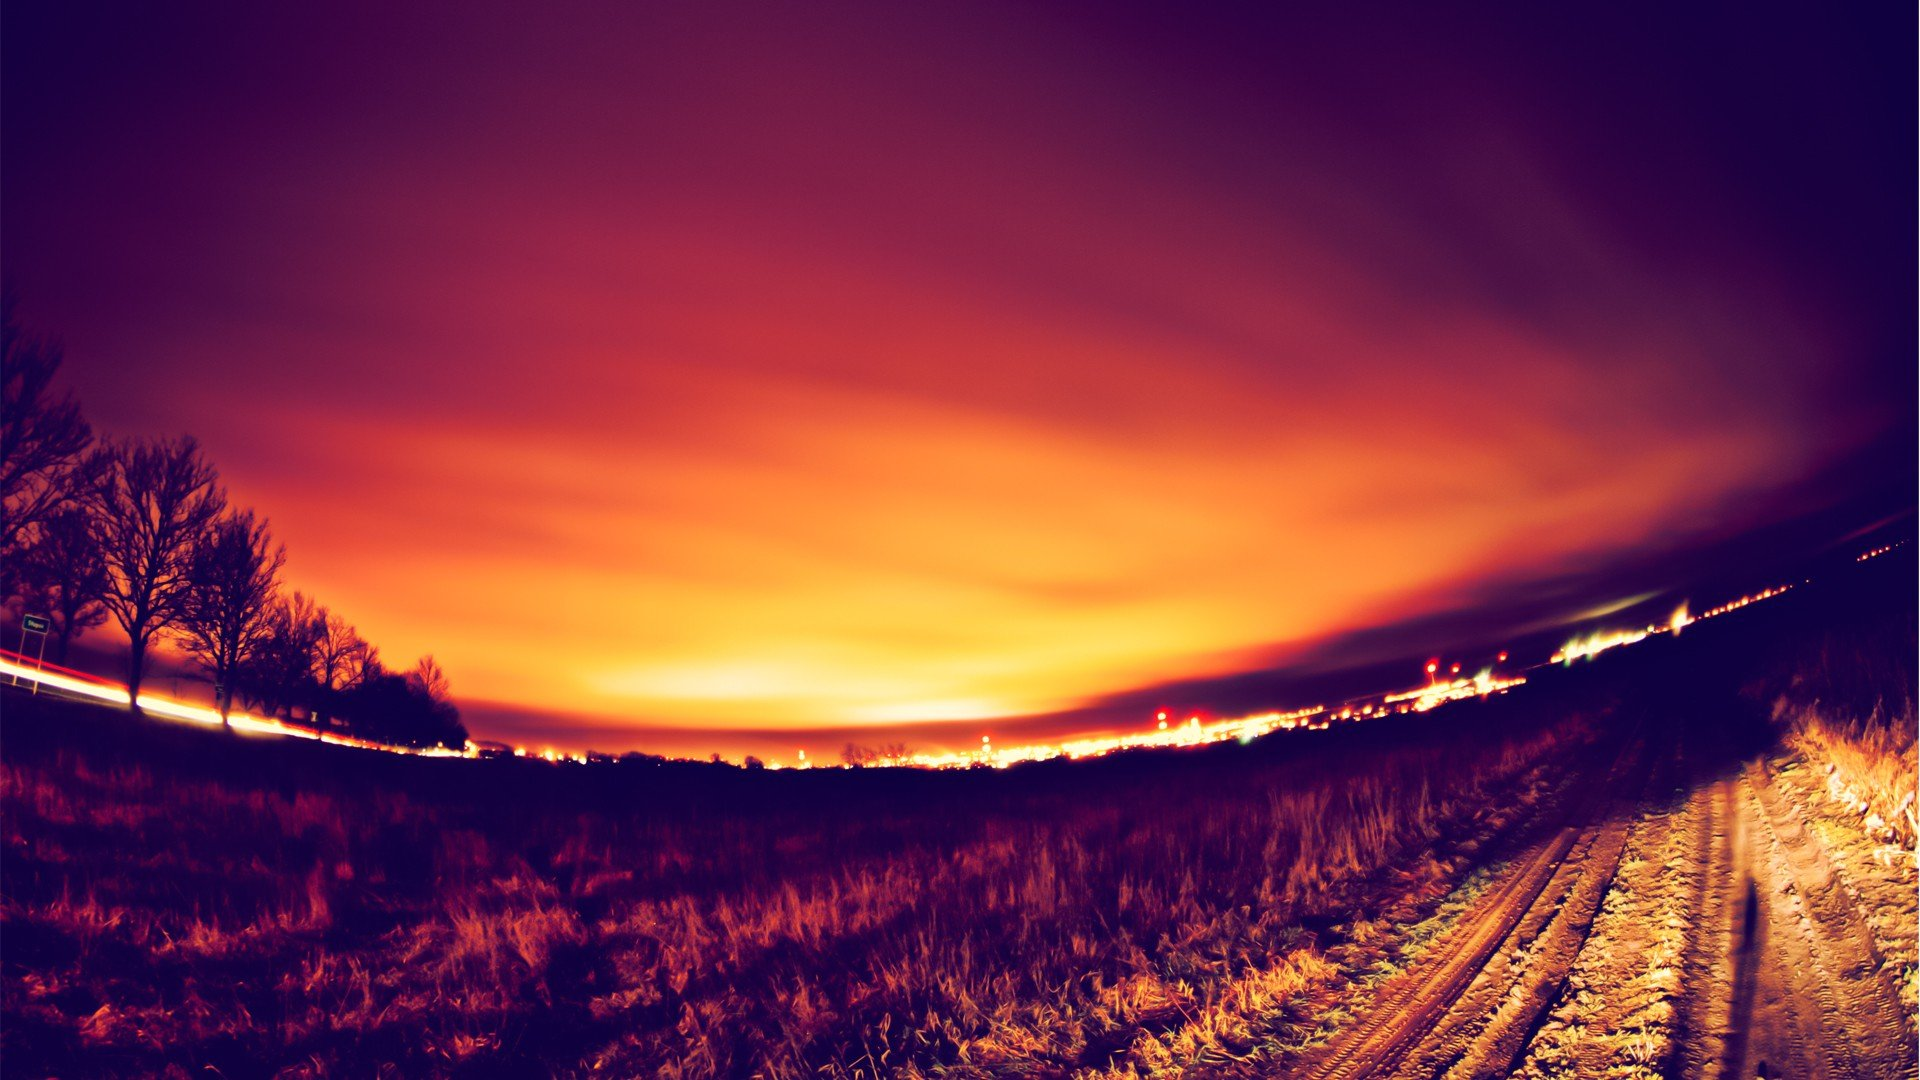 roads fisheye effect depth of field photo filters wallpaper background 1920x1080